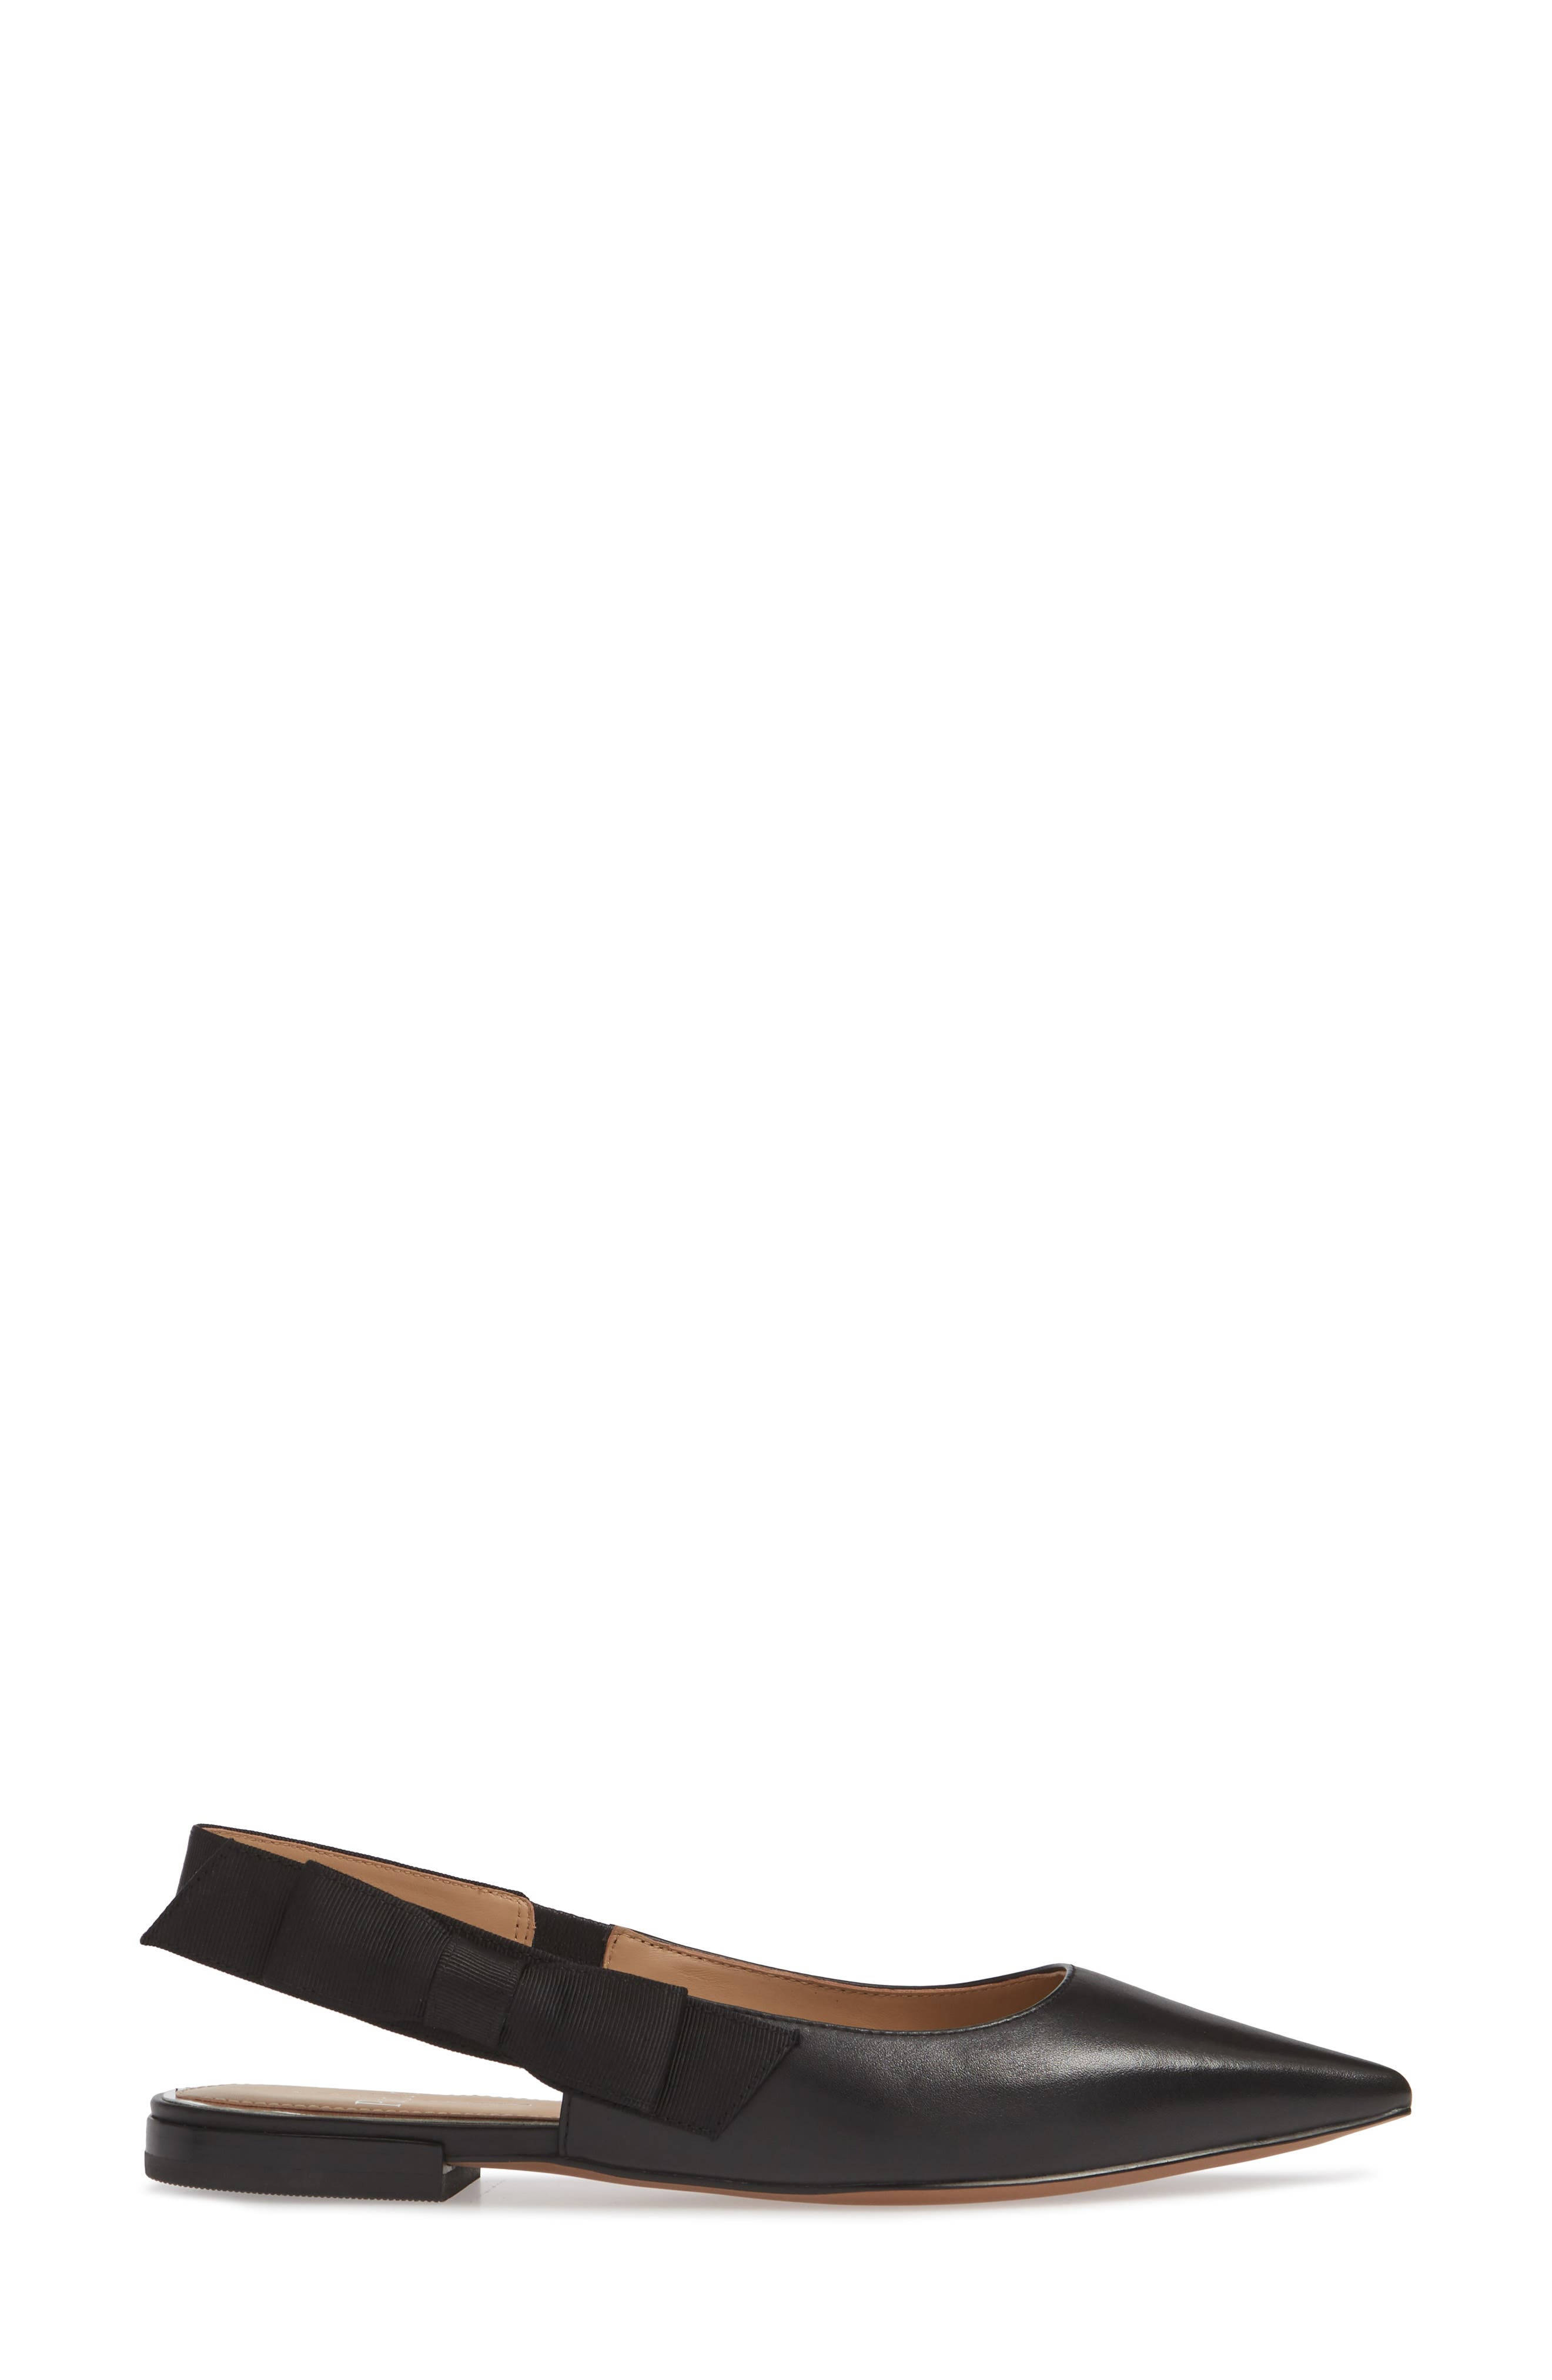 Darcy Bow Slingback Flat,                             Alternate thumbnail 3, color,                             BLACK LEATHER